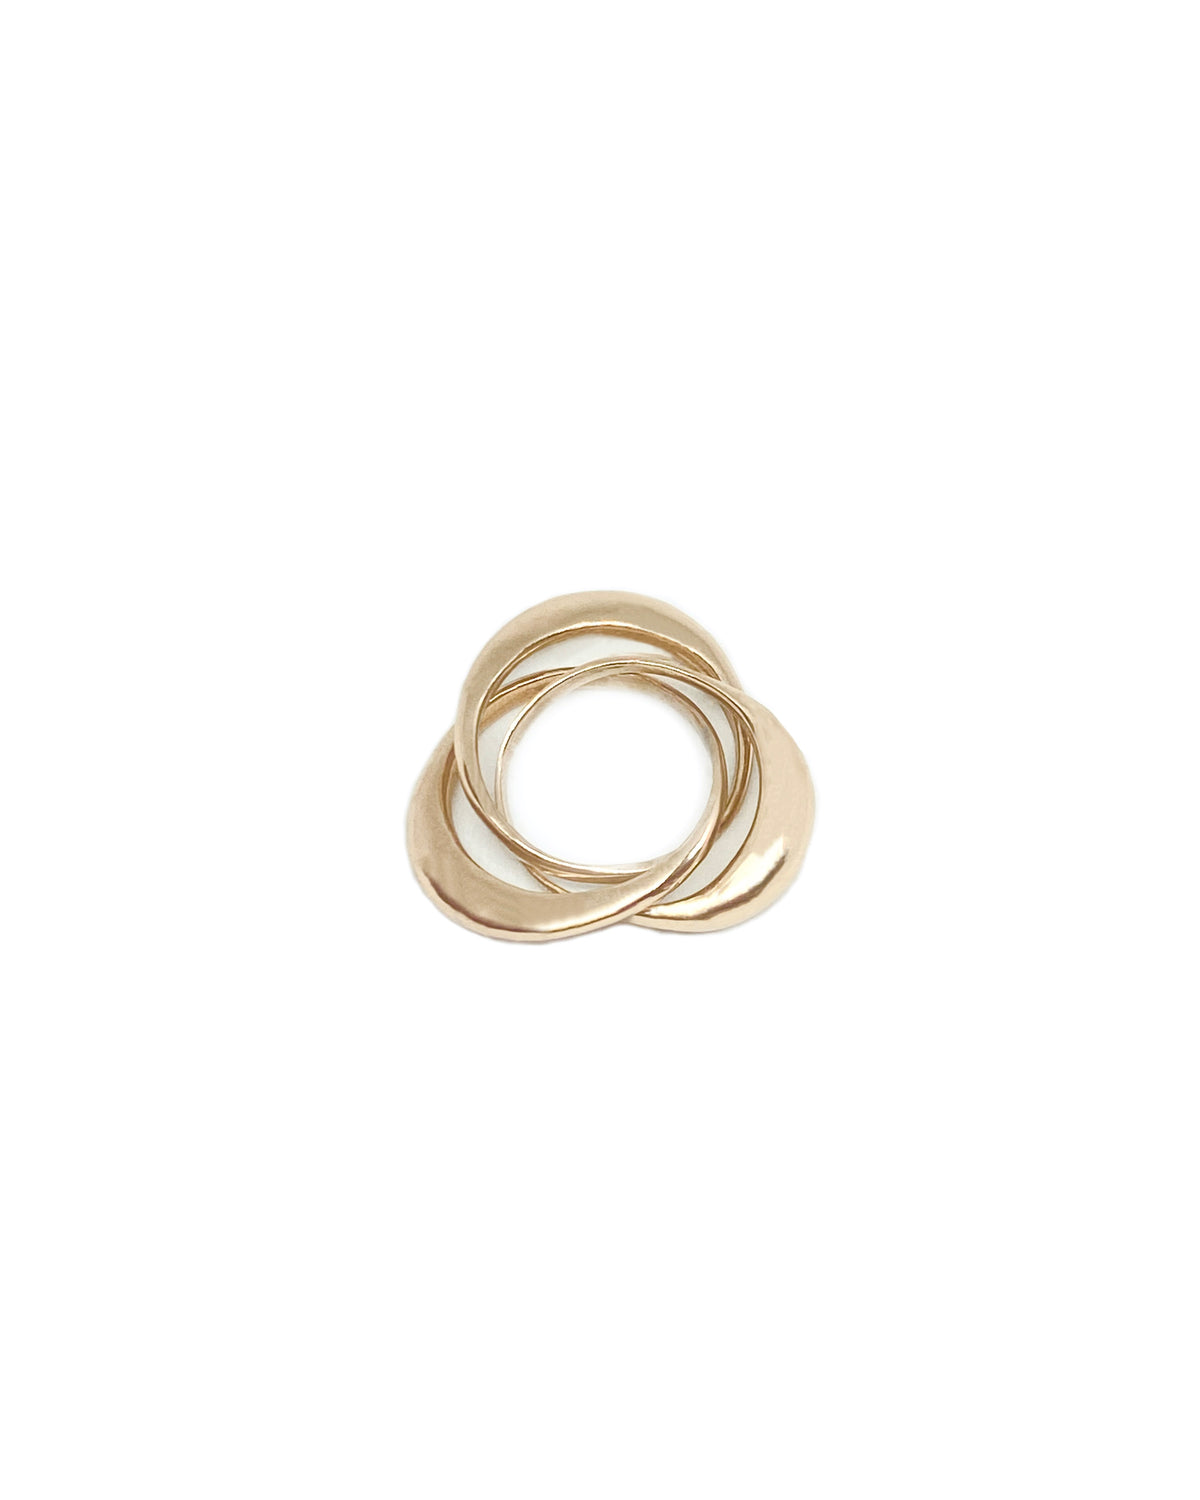 TRIPLE ROUNDED RING